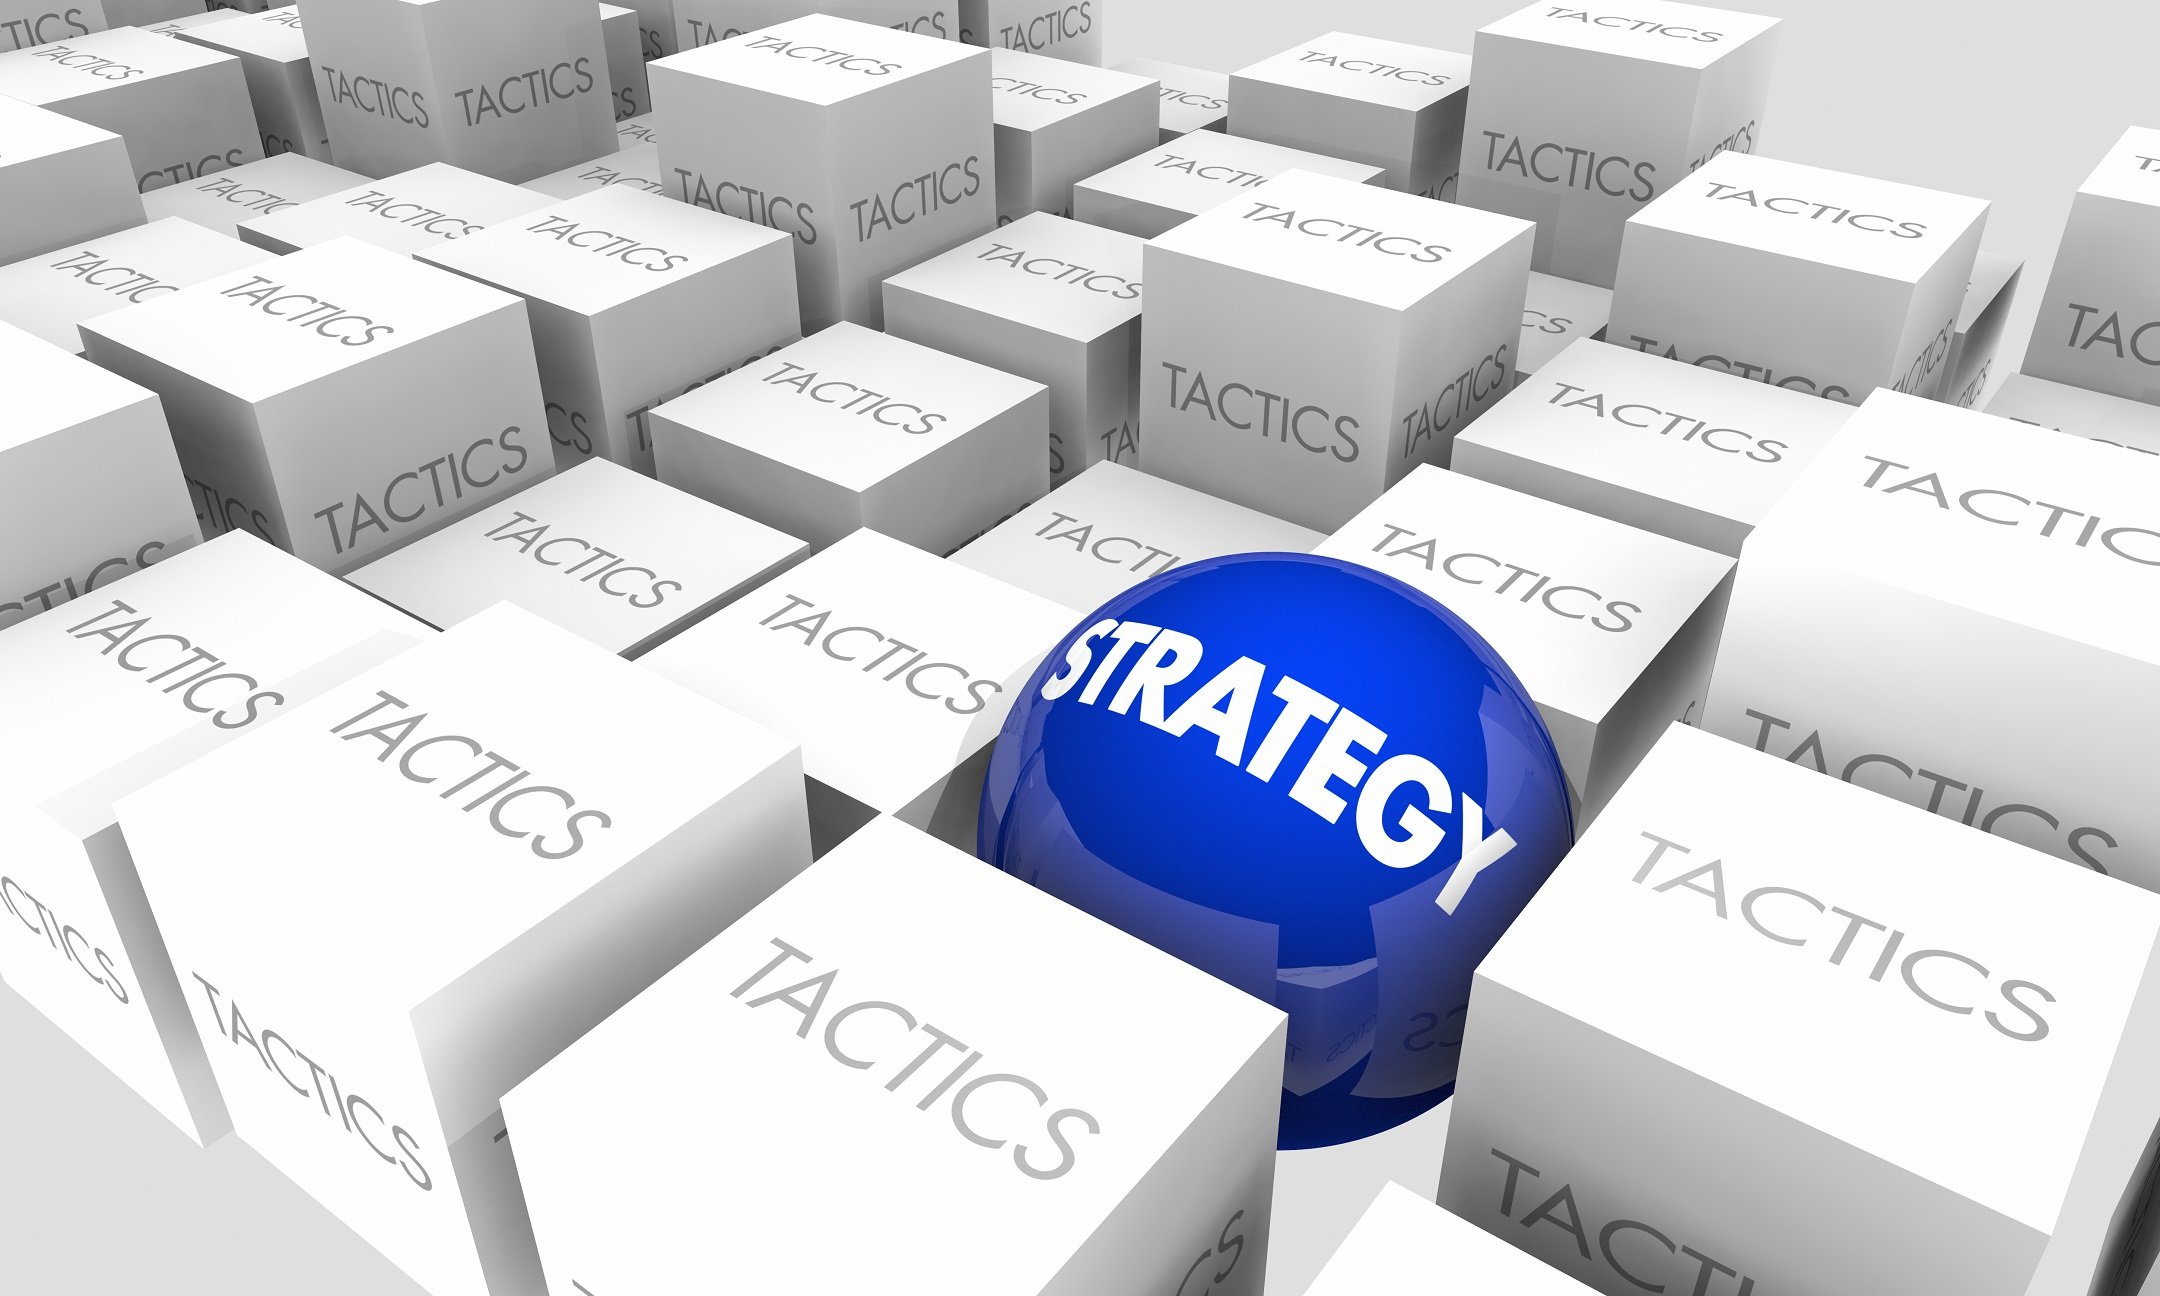 Strategical Approach to Business Goals